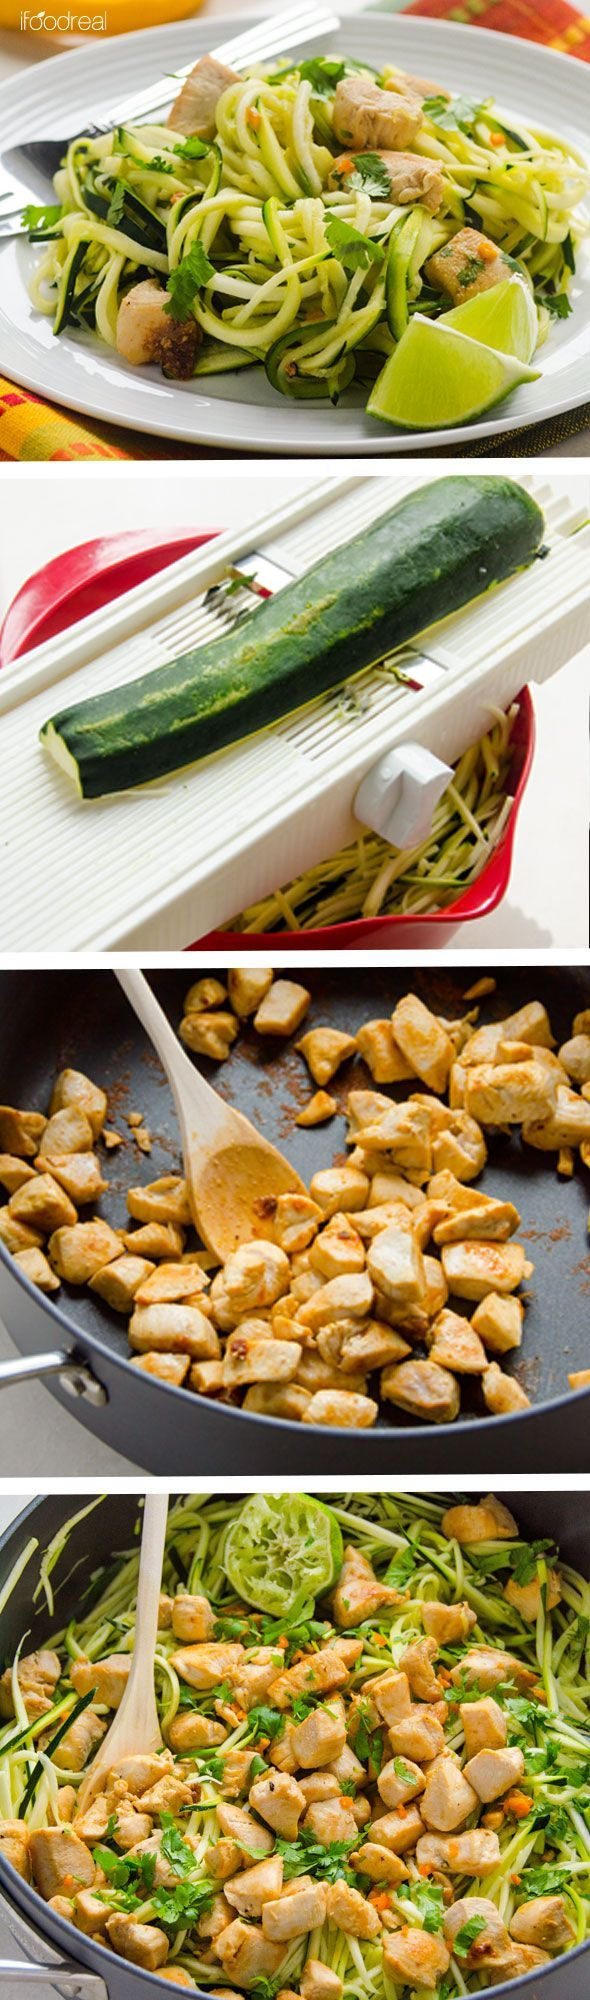 Zucchini Noodles with Cilantro Lime Chicken ~ Delicious 20-minute healthy dinner idea! If you don't have a spiralizer, just chop the zucchini.